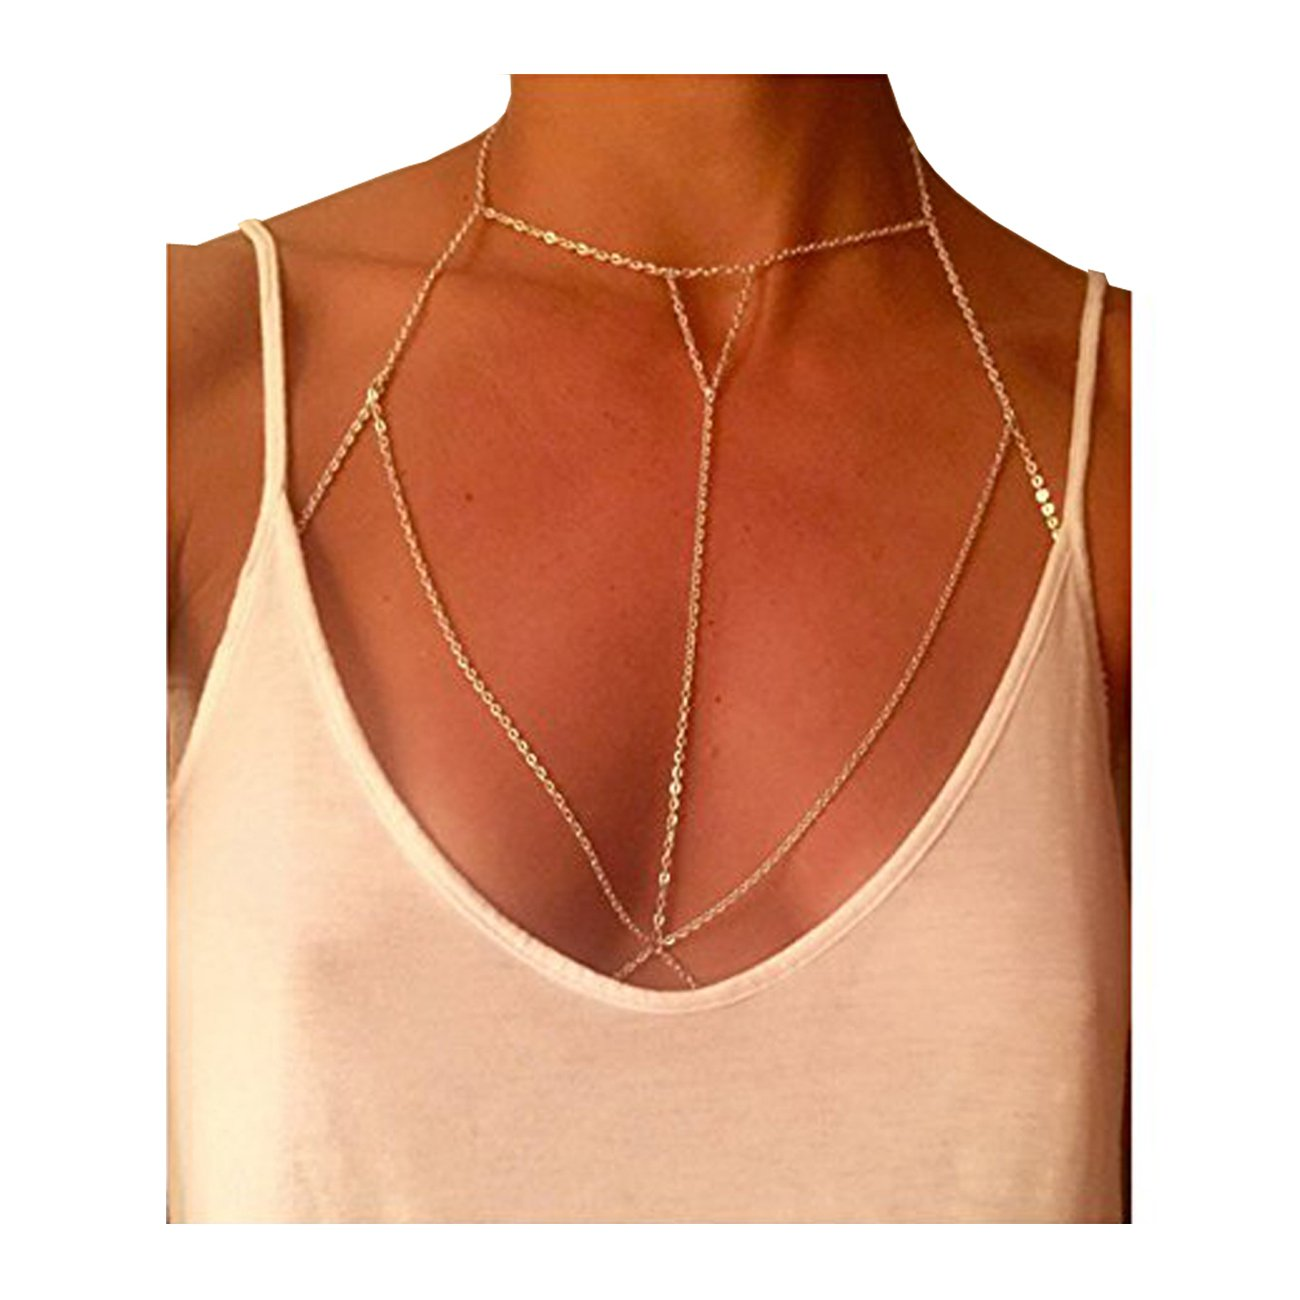 VITORIA'S GIFT Simple Women Body Jewelry Handmade Chain Tassel Chest Chain VITORIA'S GIFT YL-000